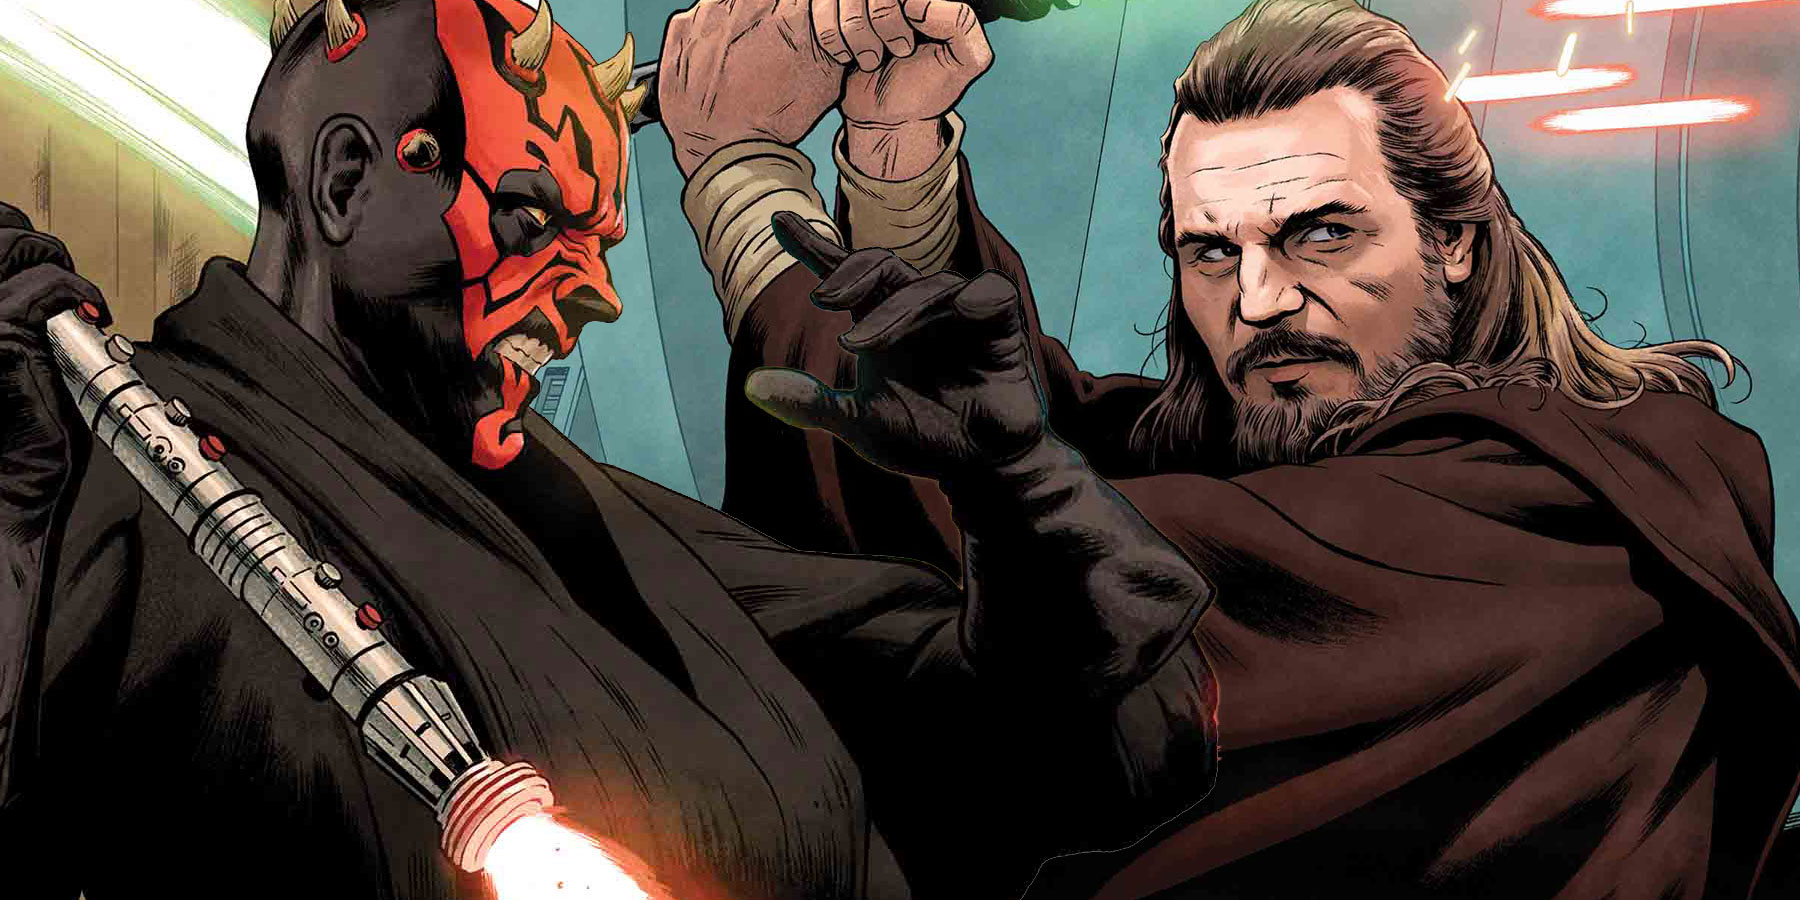 Marvel Revisit the Star Wars Prequel Era With Age of Republic Event